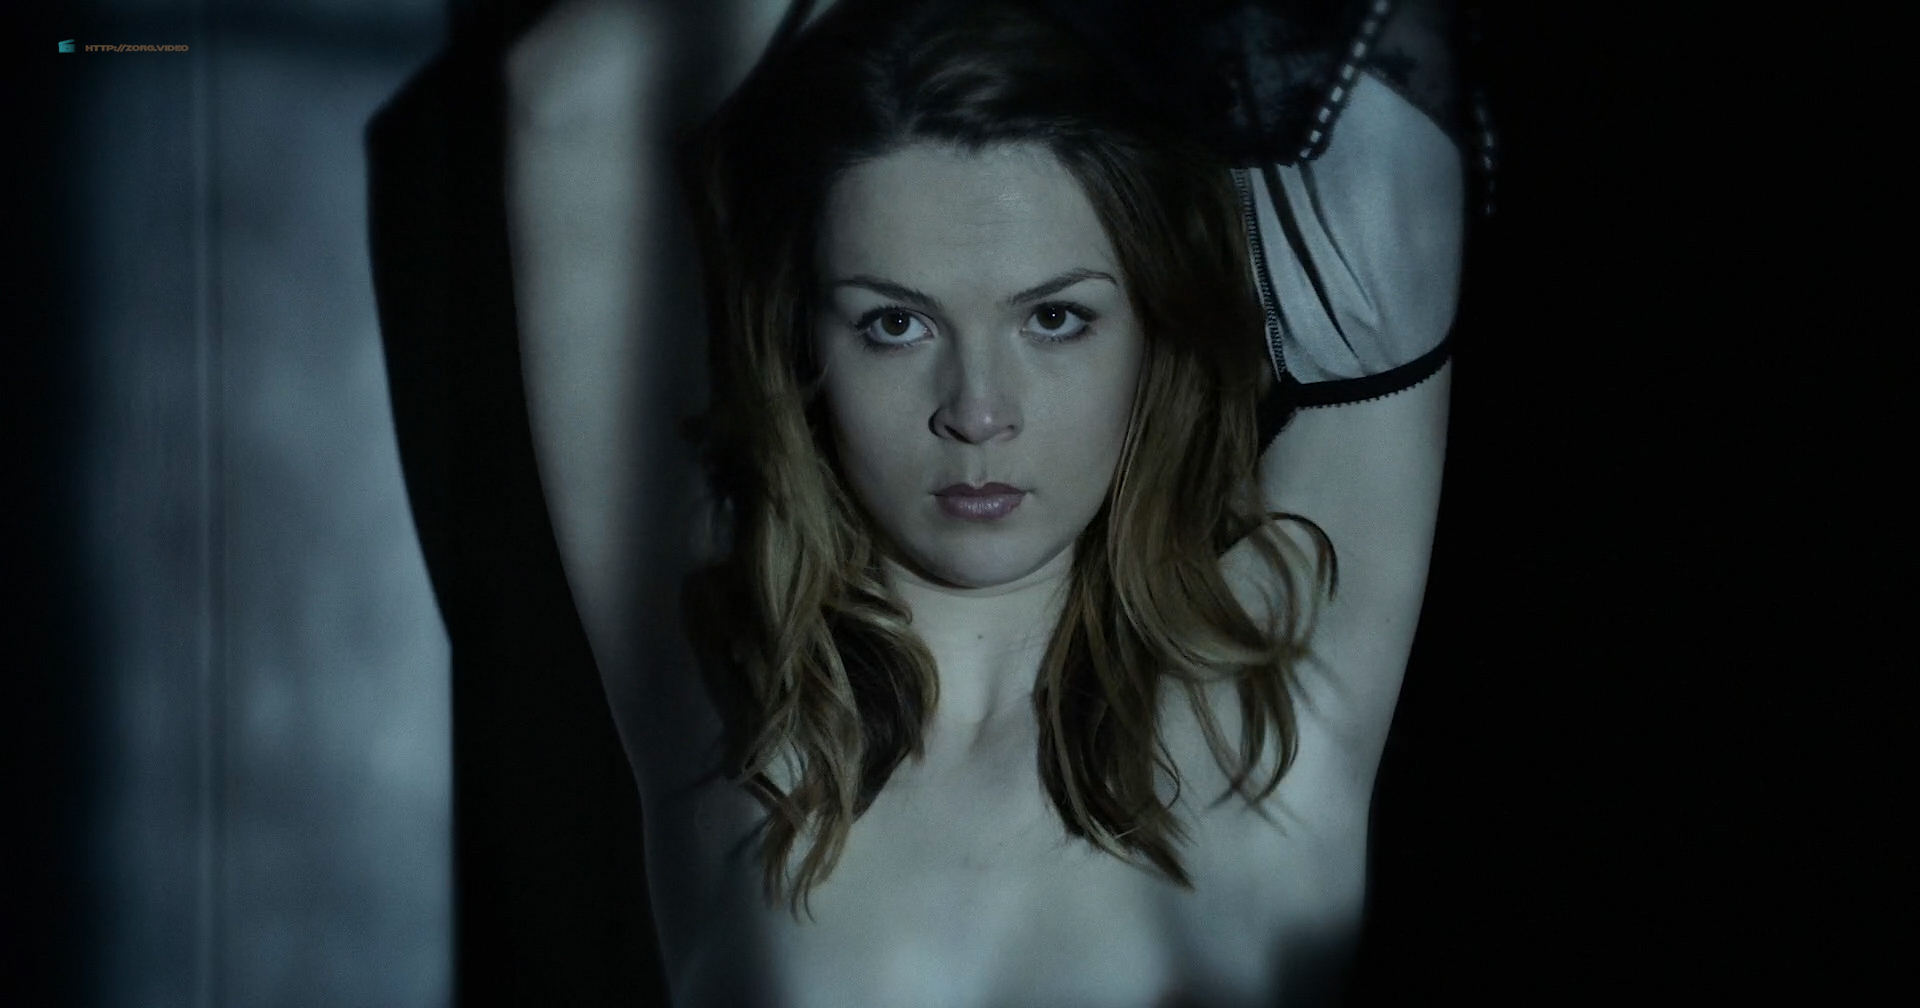 Aisling Knight nude full frontal and some sex - The Sitter (2017) HD 1080p (9)